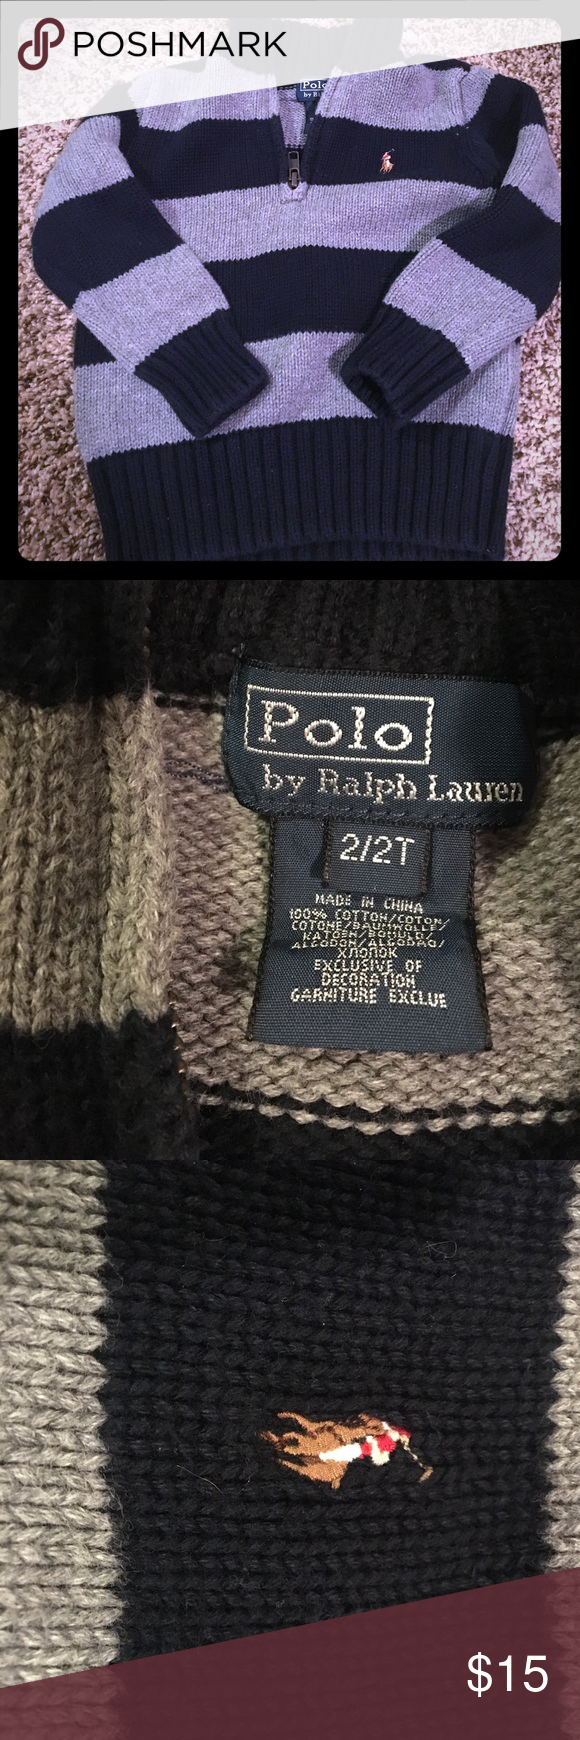 Ralph Lauren pullover sweater size 2t Excellent condition- no flaws- worn once- navy and grey sweater pullover Polo by Ralph Lauren Shirts & Tops Sweaters